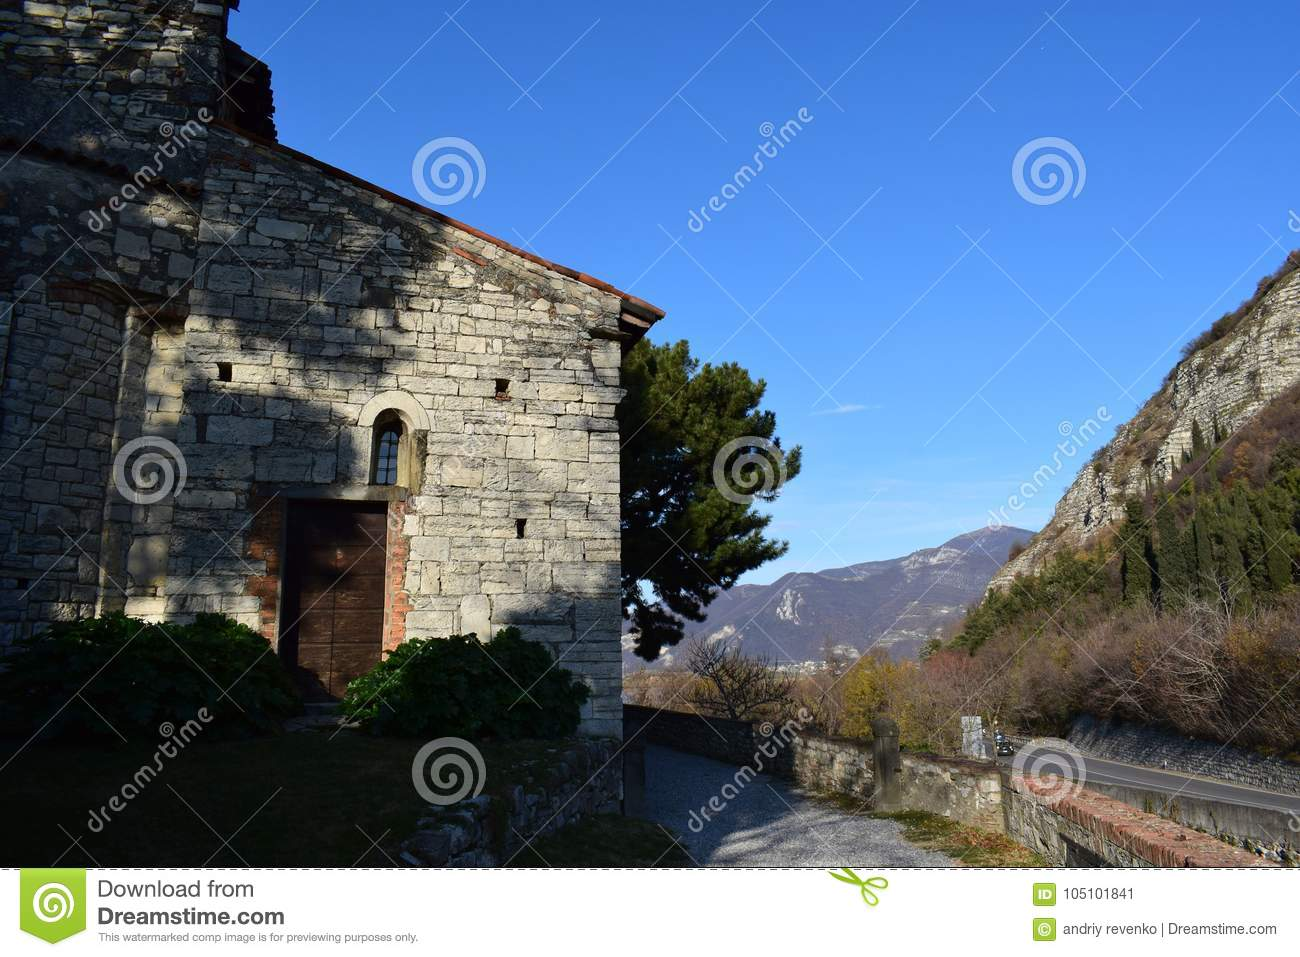 Das Kloster nahe iseo See